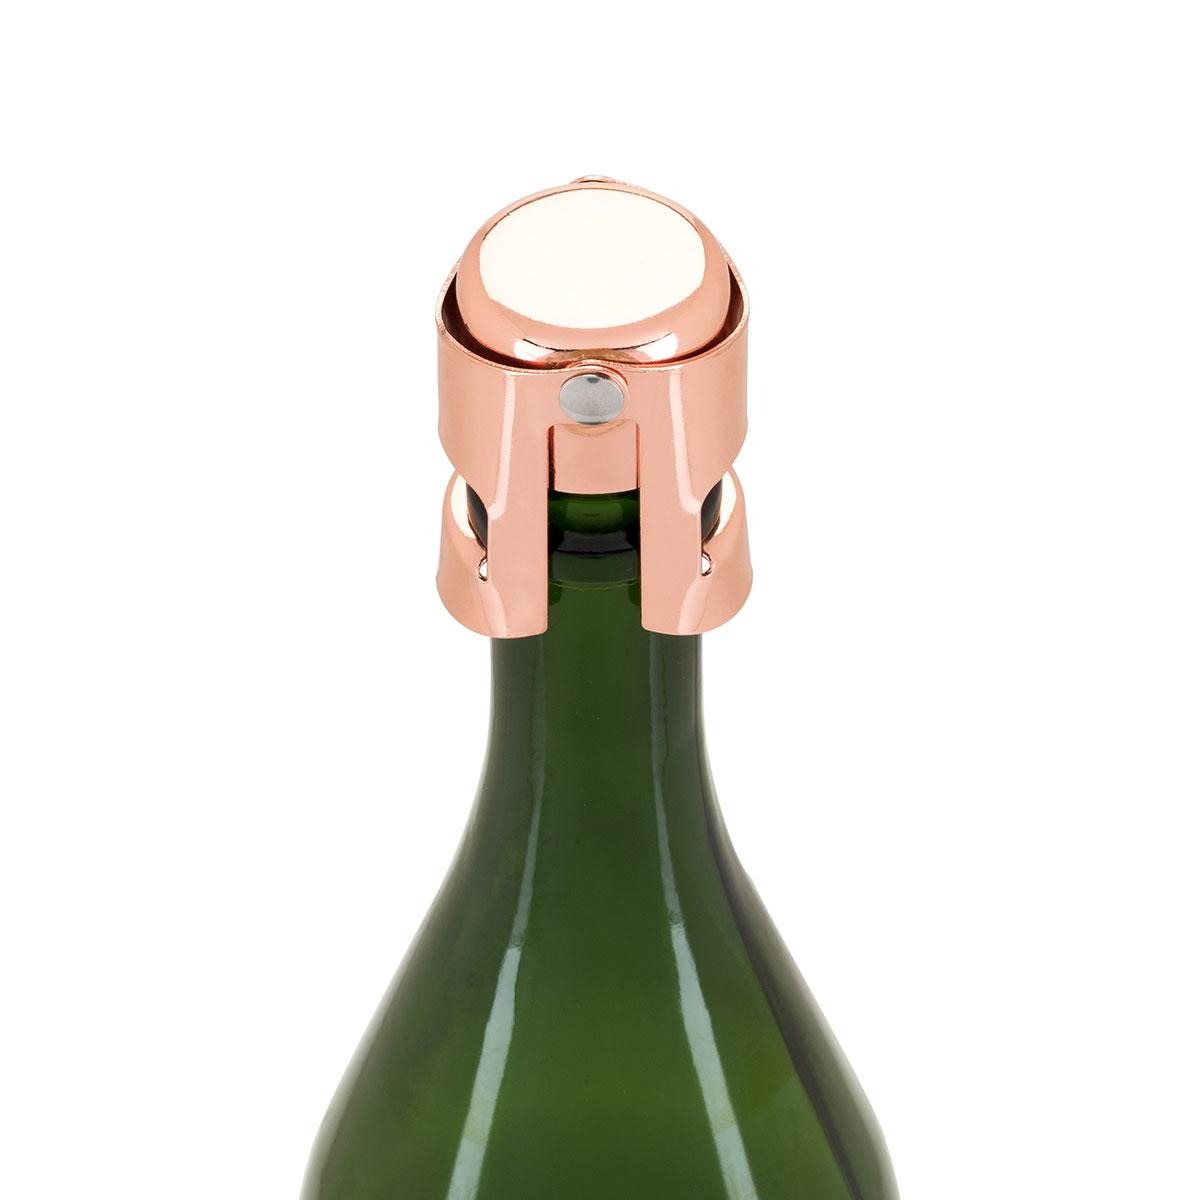 Uberstar Champagne Stopper - Rose Gold - Only £6.99